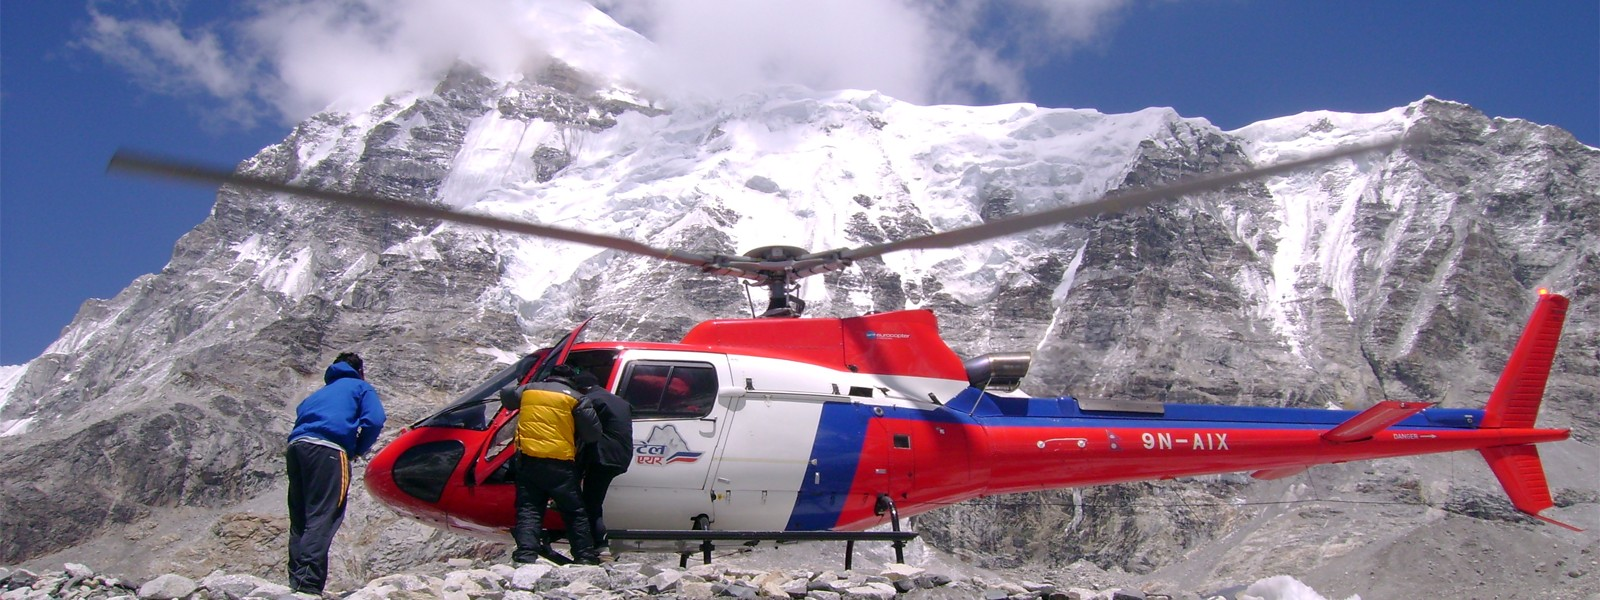 Nepal Helicopter Rescue